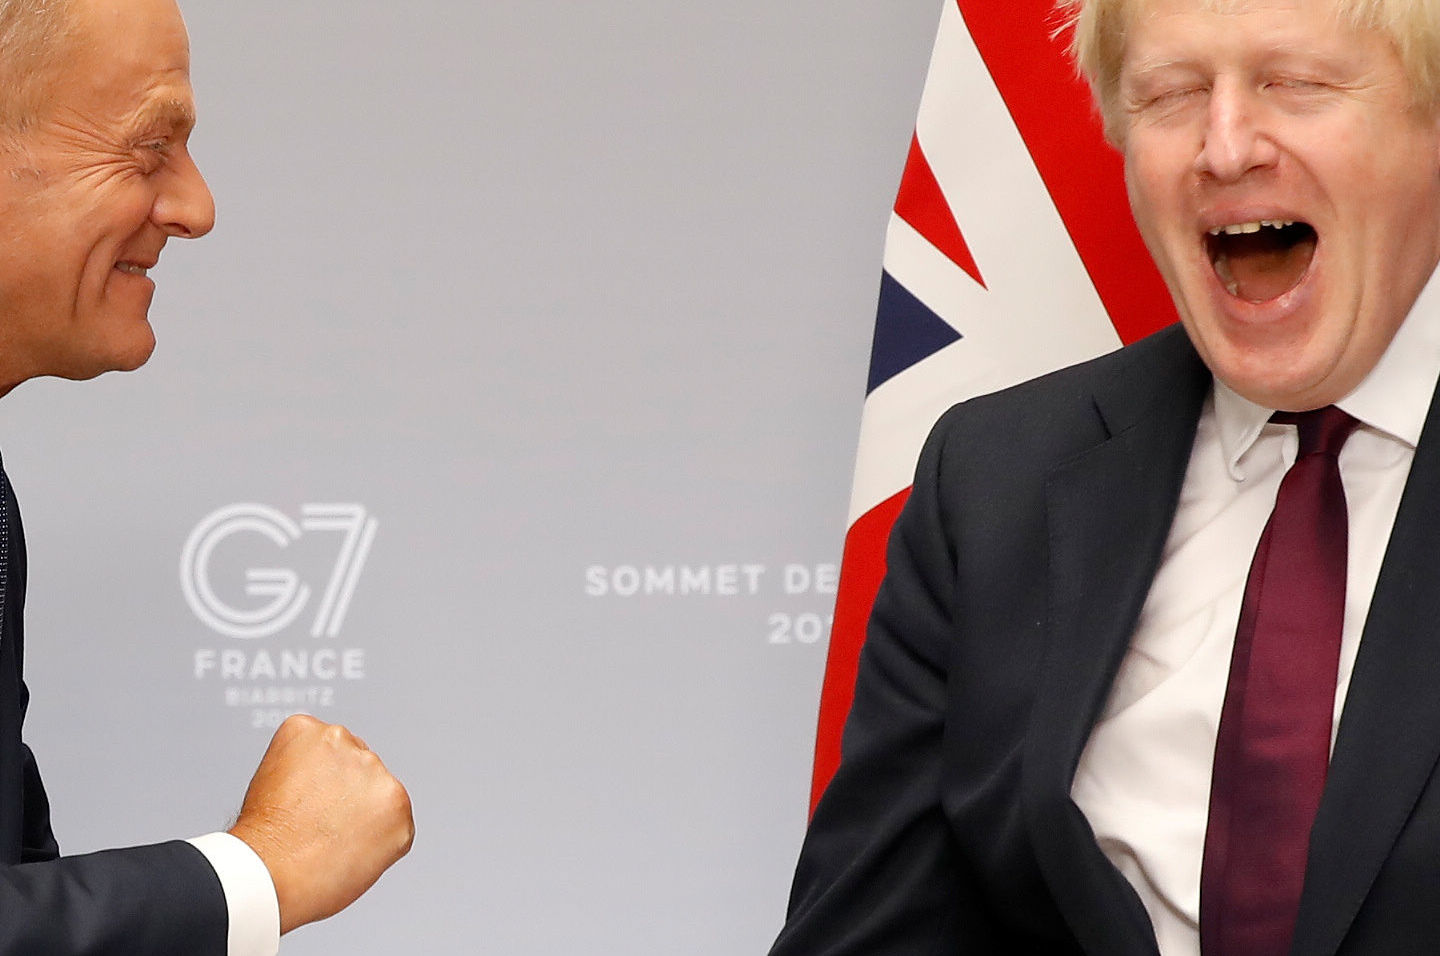 Britain's Prime Minister Boris Johnson meets European Council President Donald Tusk for a bilateral meeting during the G7 summit in Biarritz, France, August 25, 2019.